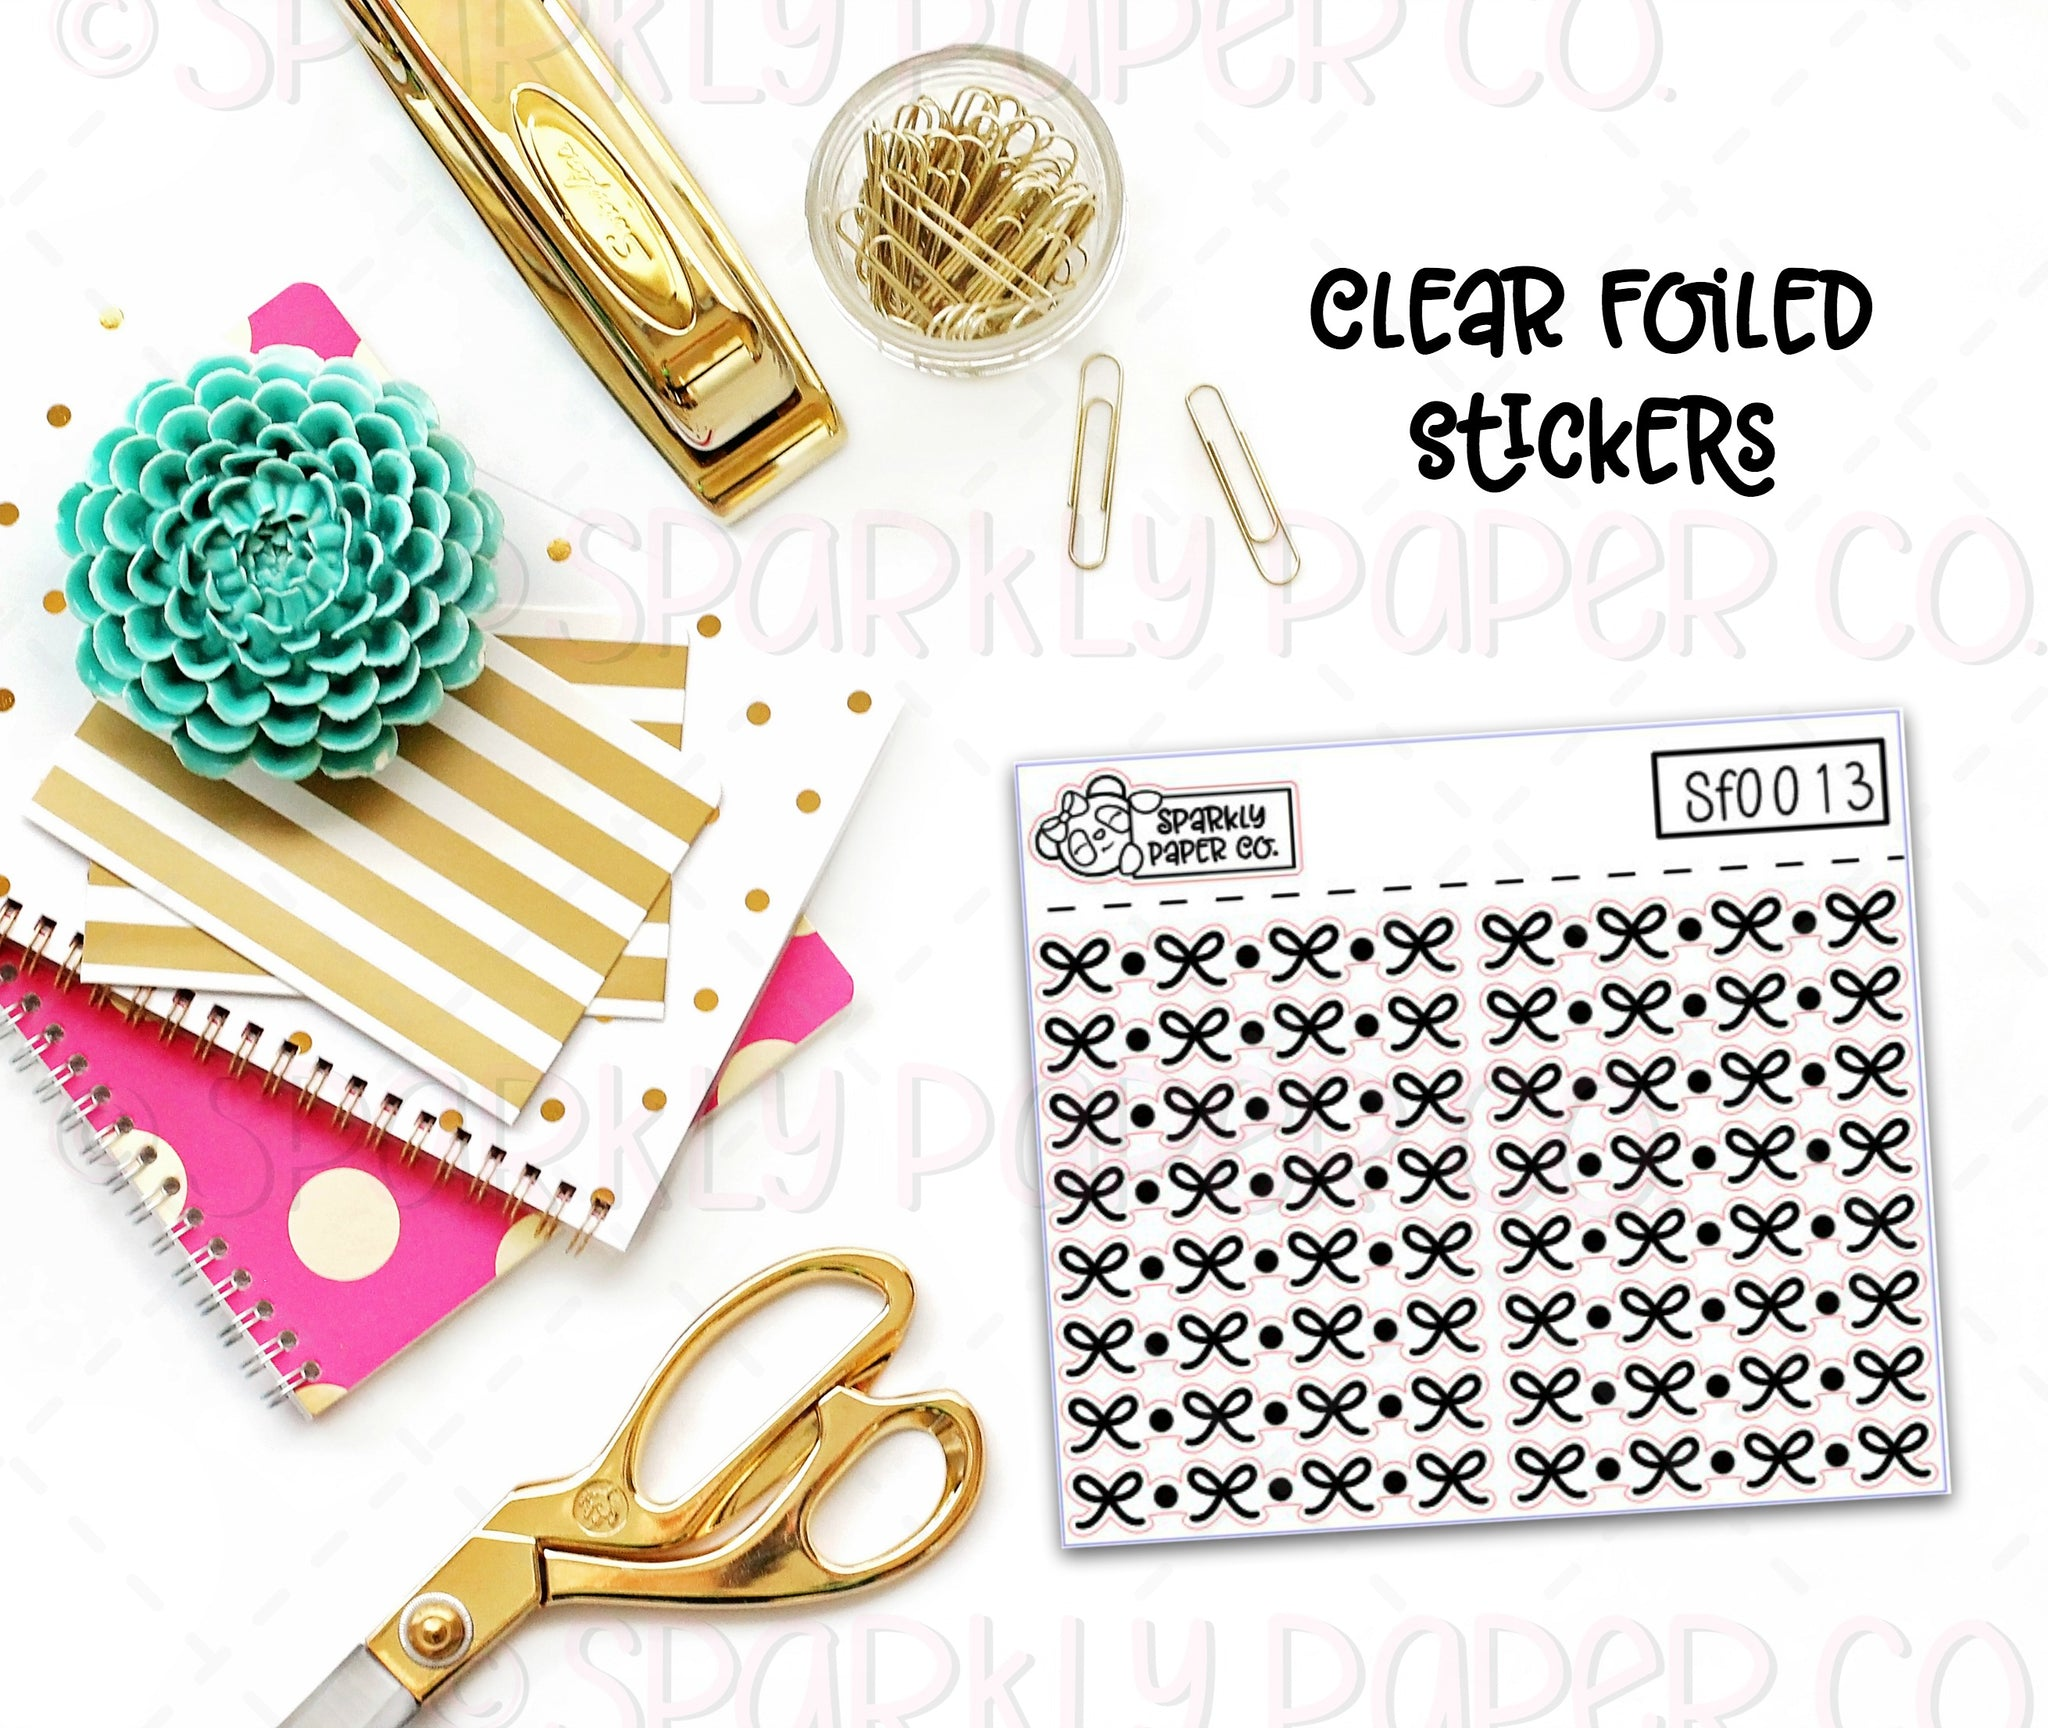 Bows and Dots Header/Dividers Clear Foiled Stickers (sf0013)